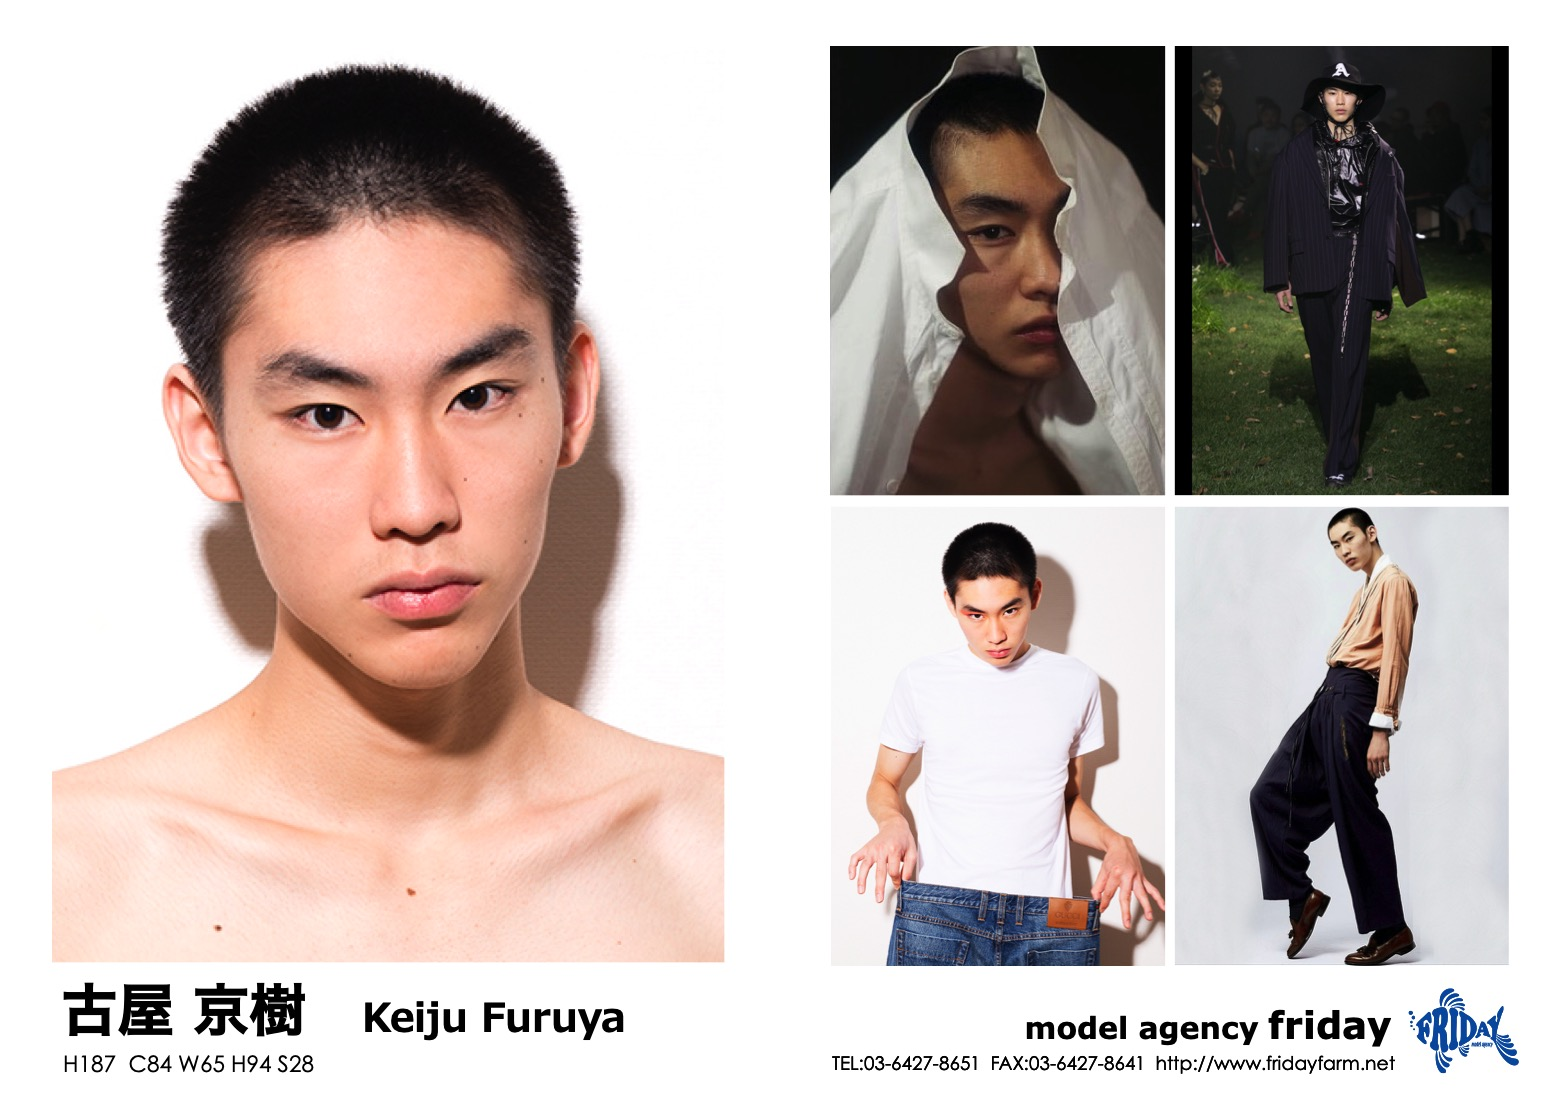 古屋 京樹 - Keiju Furuya | model agency friday